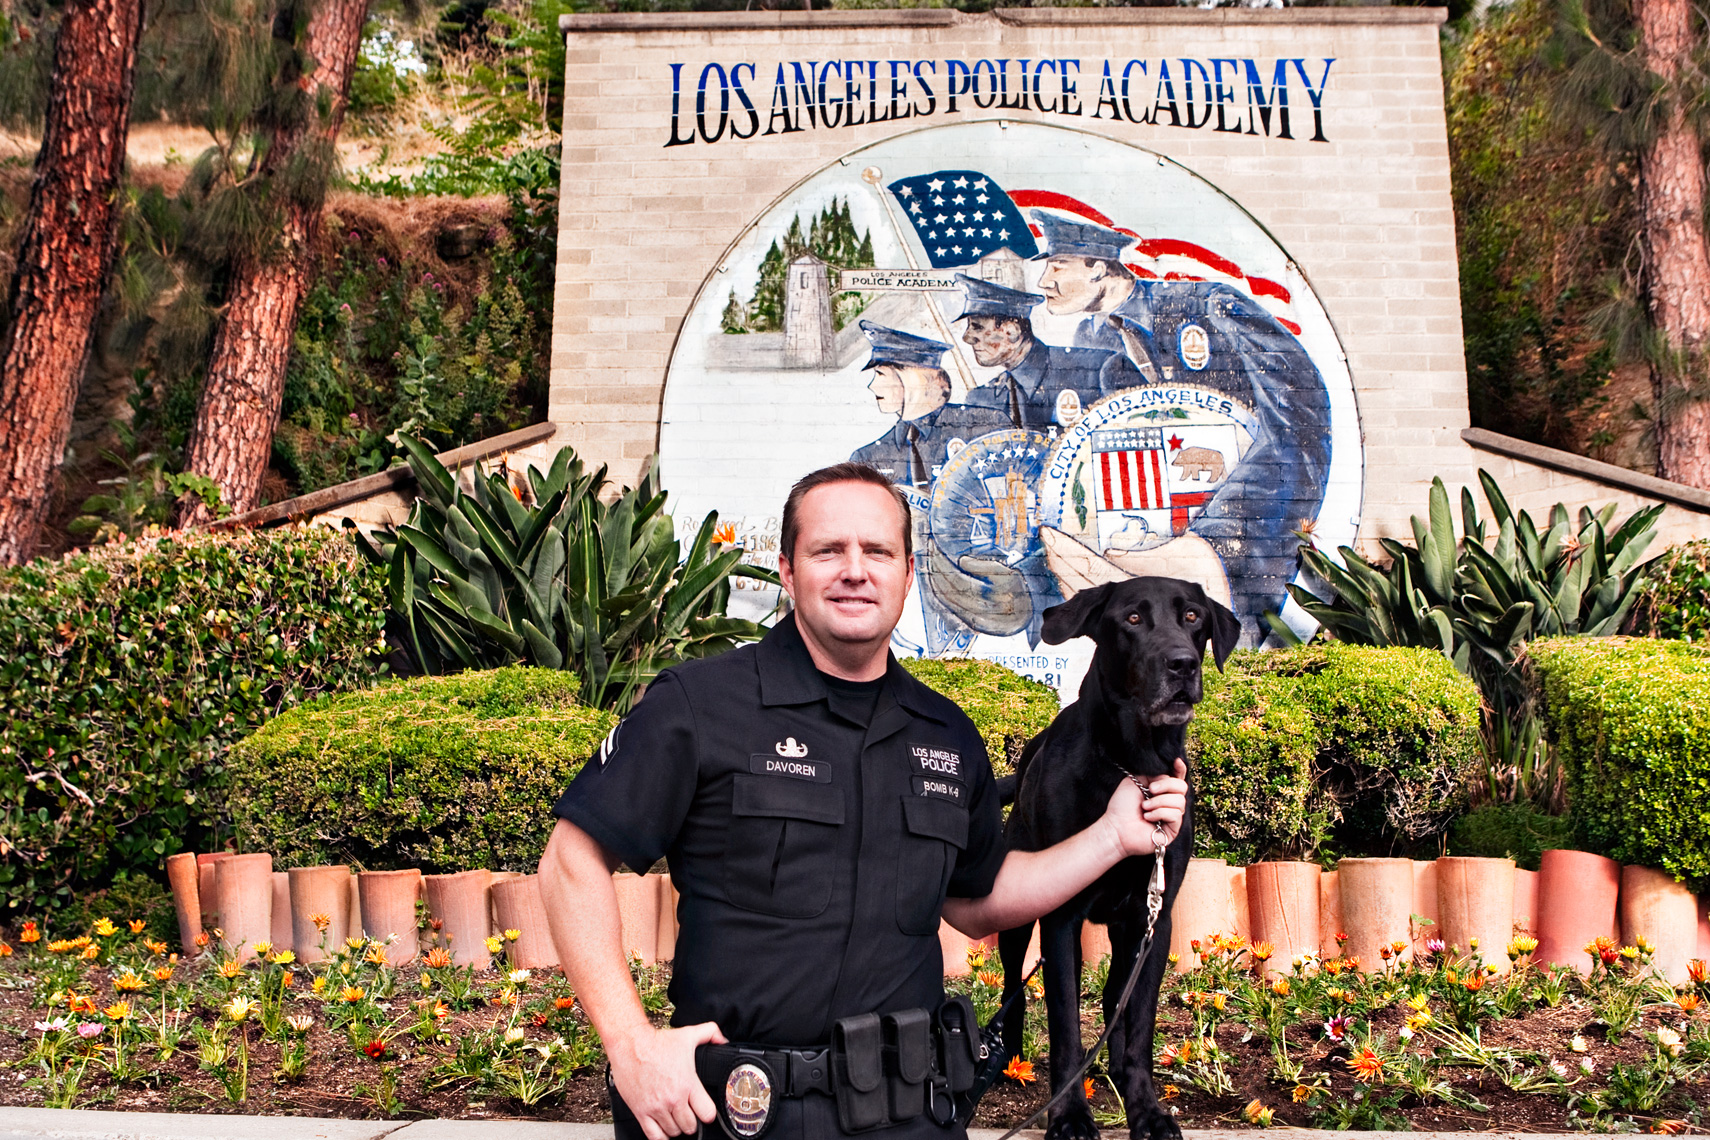 Los Angeles Dog Photography, Michael Brian, LAPD Officer and K-9, Cesar Millan, Los Angeles Police Department, Cesar